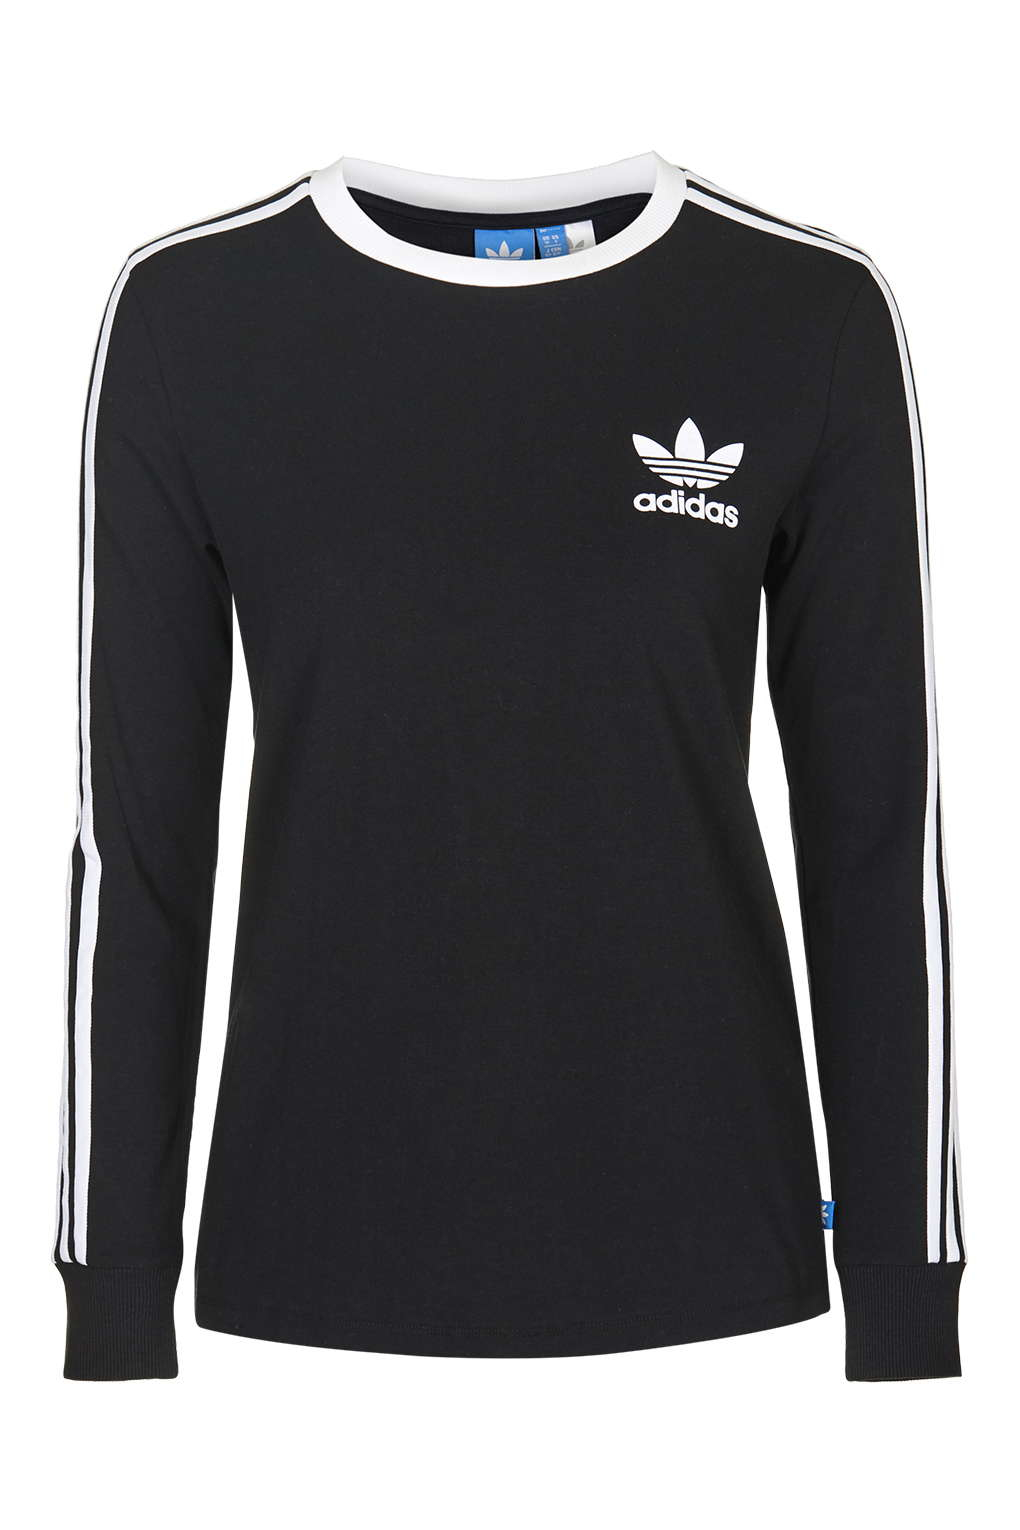 Topshop Three Stripe Long Sleeve Top Adidas Originals in Black  Lyst